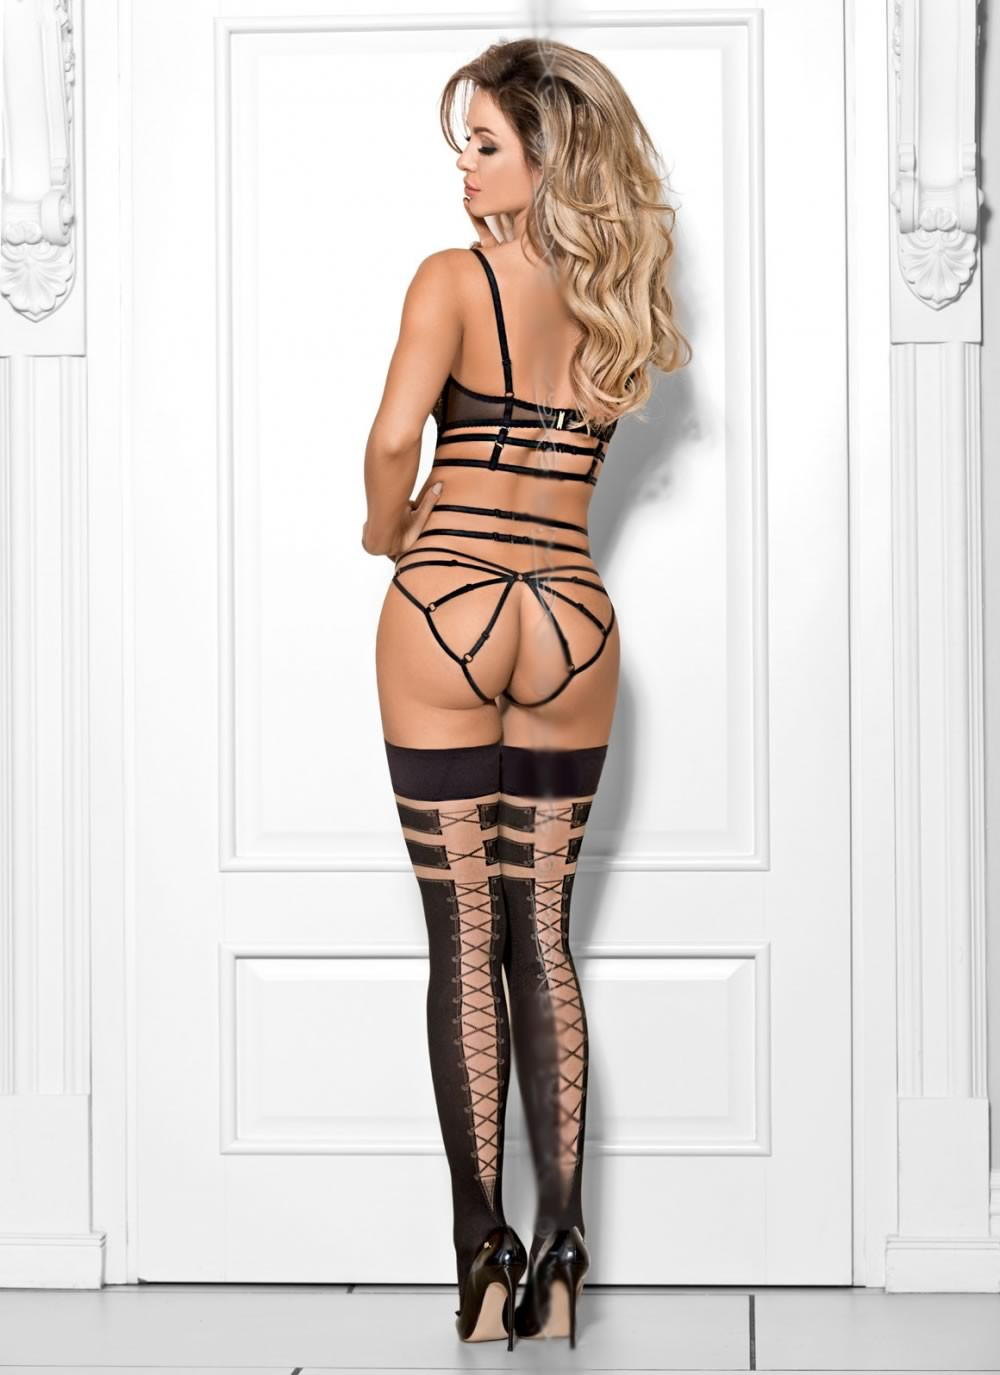 Axami V-7688 Churro con Nutella Panty - back